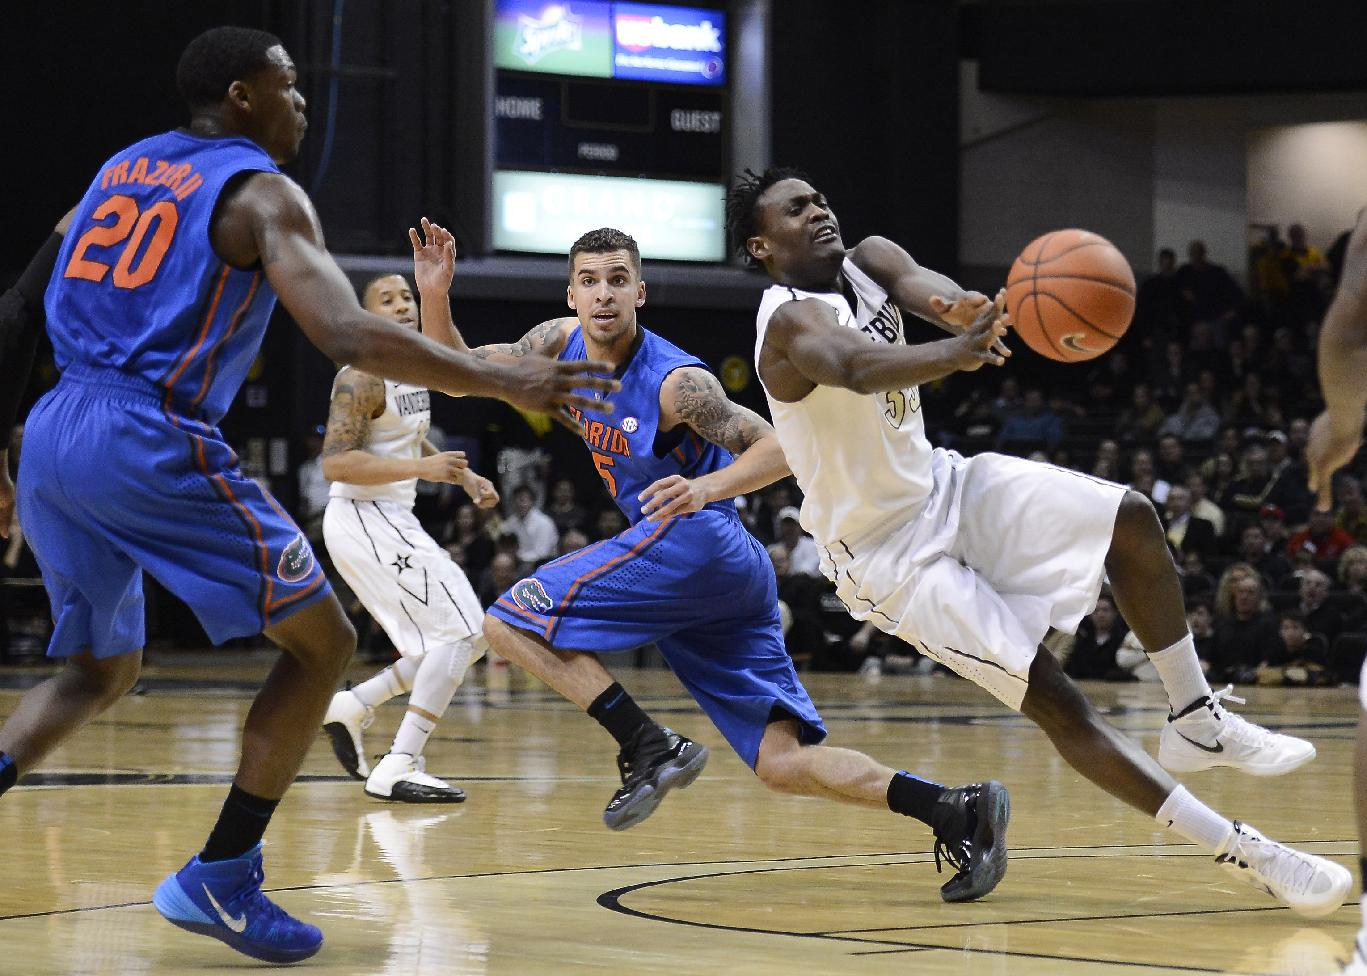 Vanderbilt forward James Siakam (35) passes the ball as he is defended by Florida guard Michael Frazier II (20) and guard Scottie Wilbekin (5) in the second half of an NCAA college basketball game, Tuesday, Feb. 25, 2014, in Nashville, Tenn. Florida won 57-54